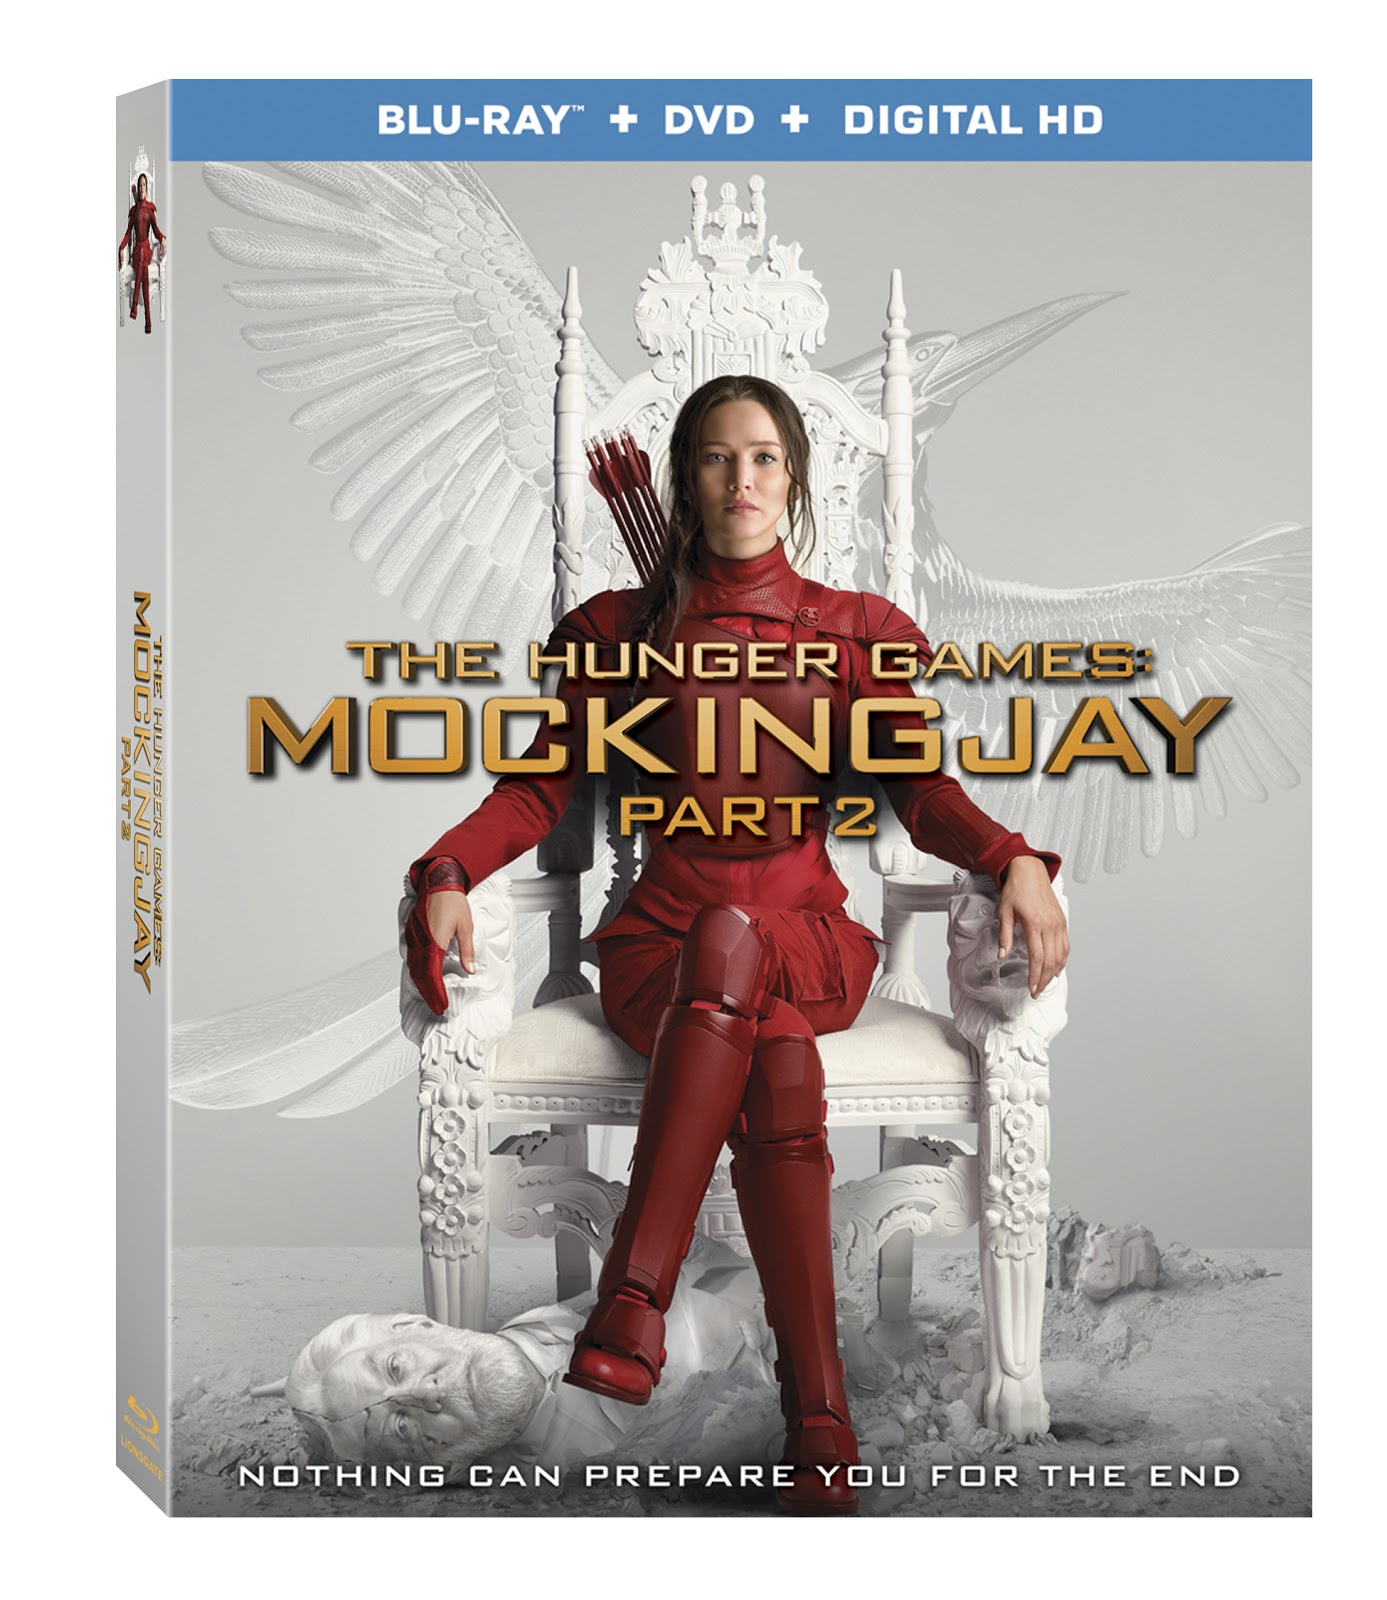 the-hunger-games-mockingjay-part-2 Blu-ray Review